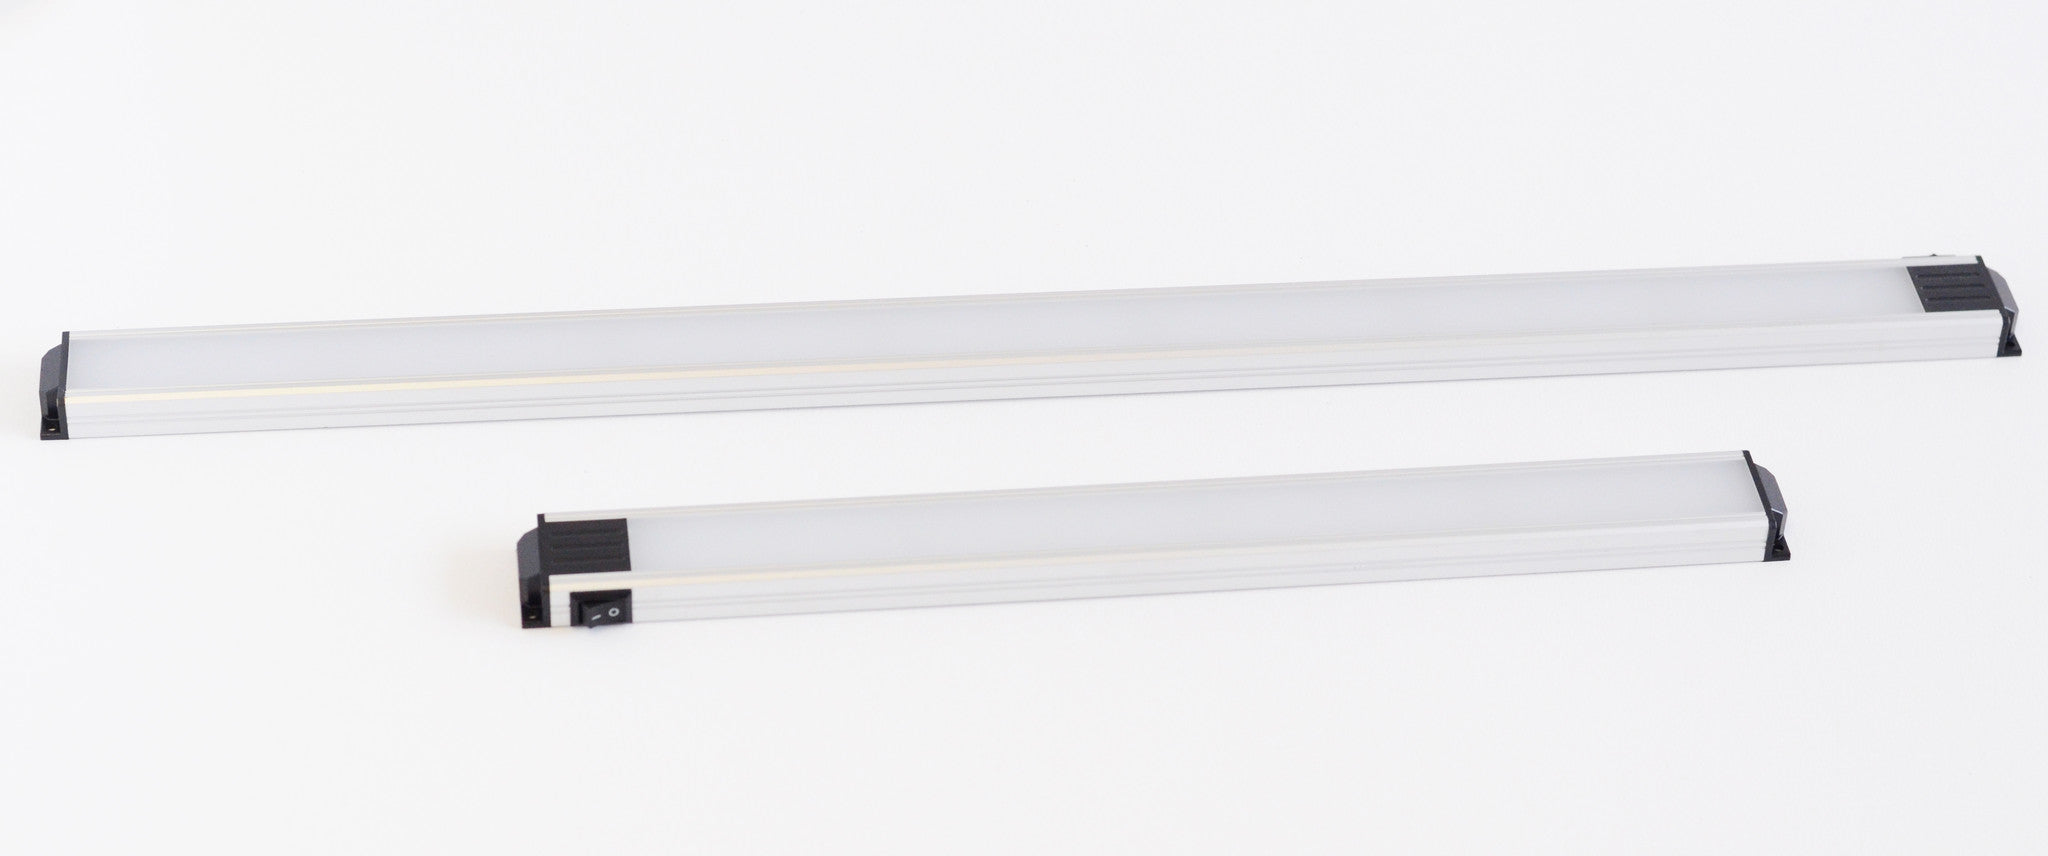 12VDC Aluminium LED Strips with Switch - BNR Industrial